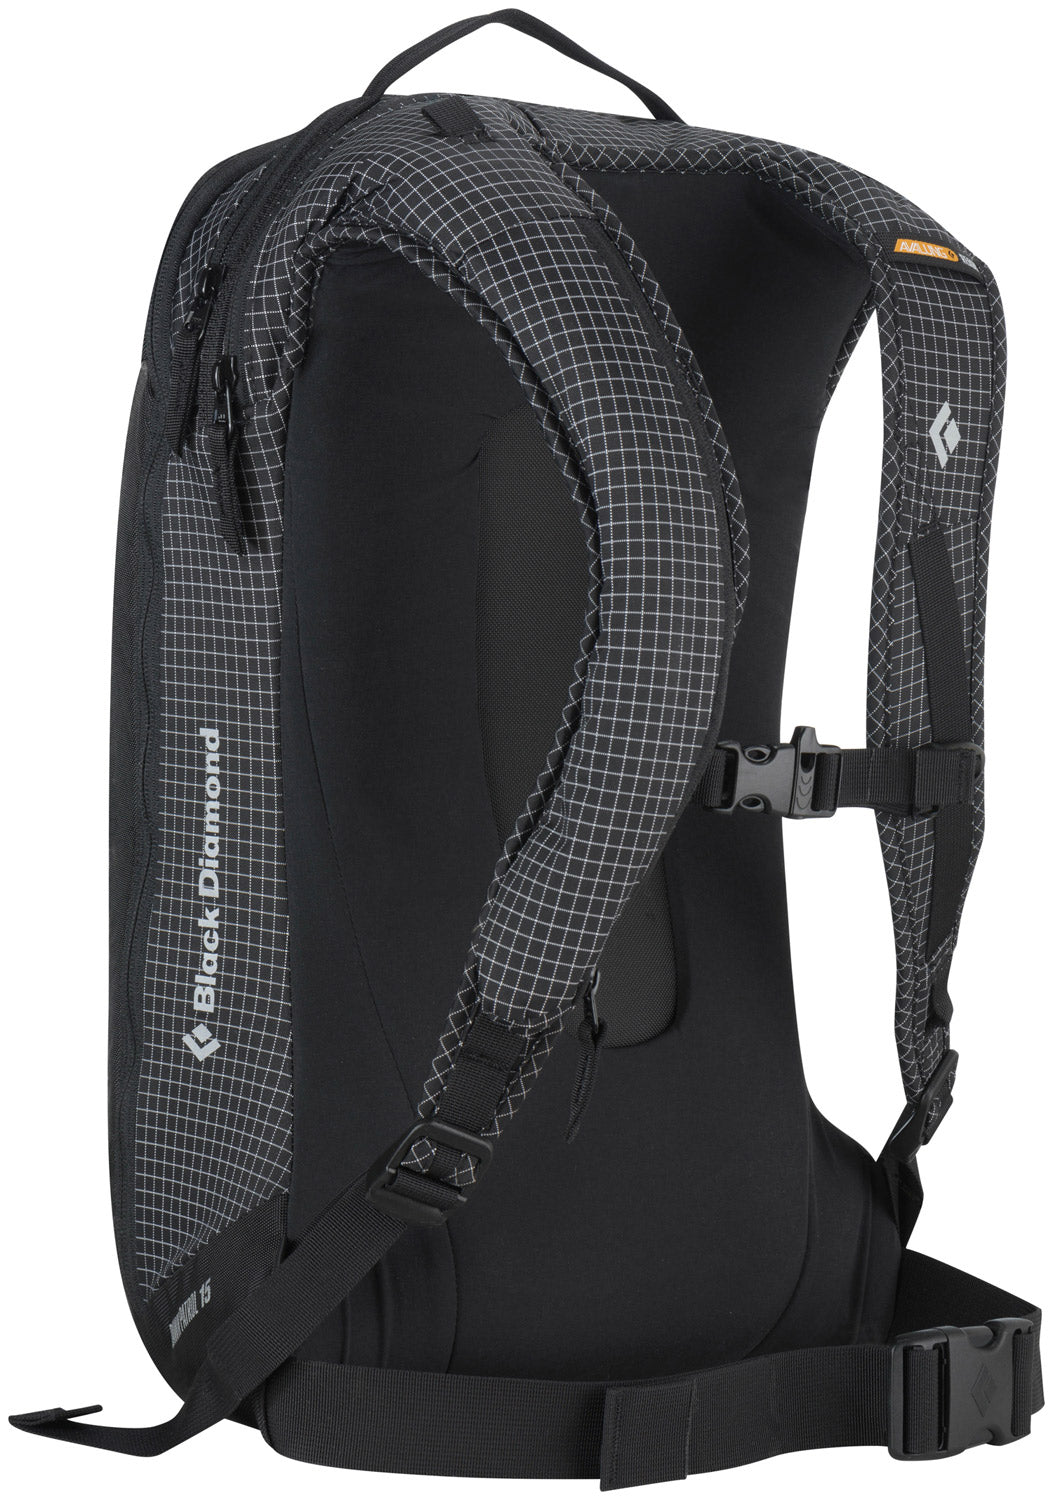 Dawn Patrol 15 - Torch/Black